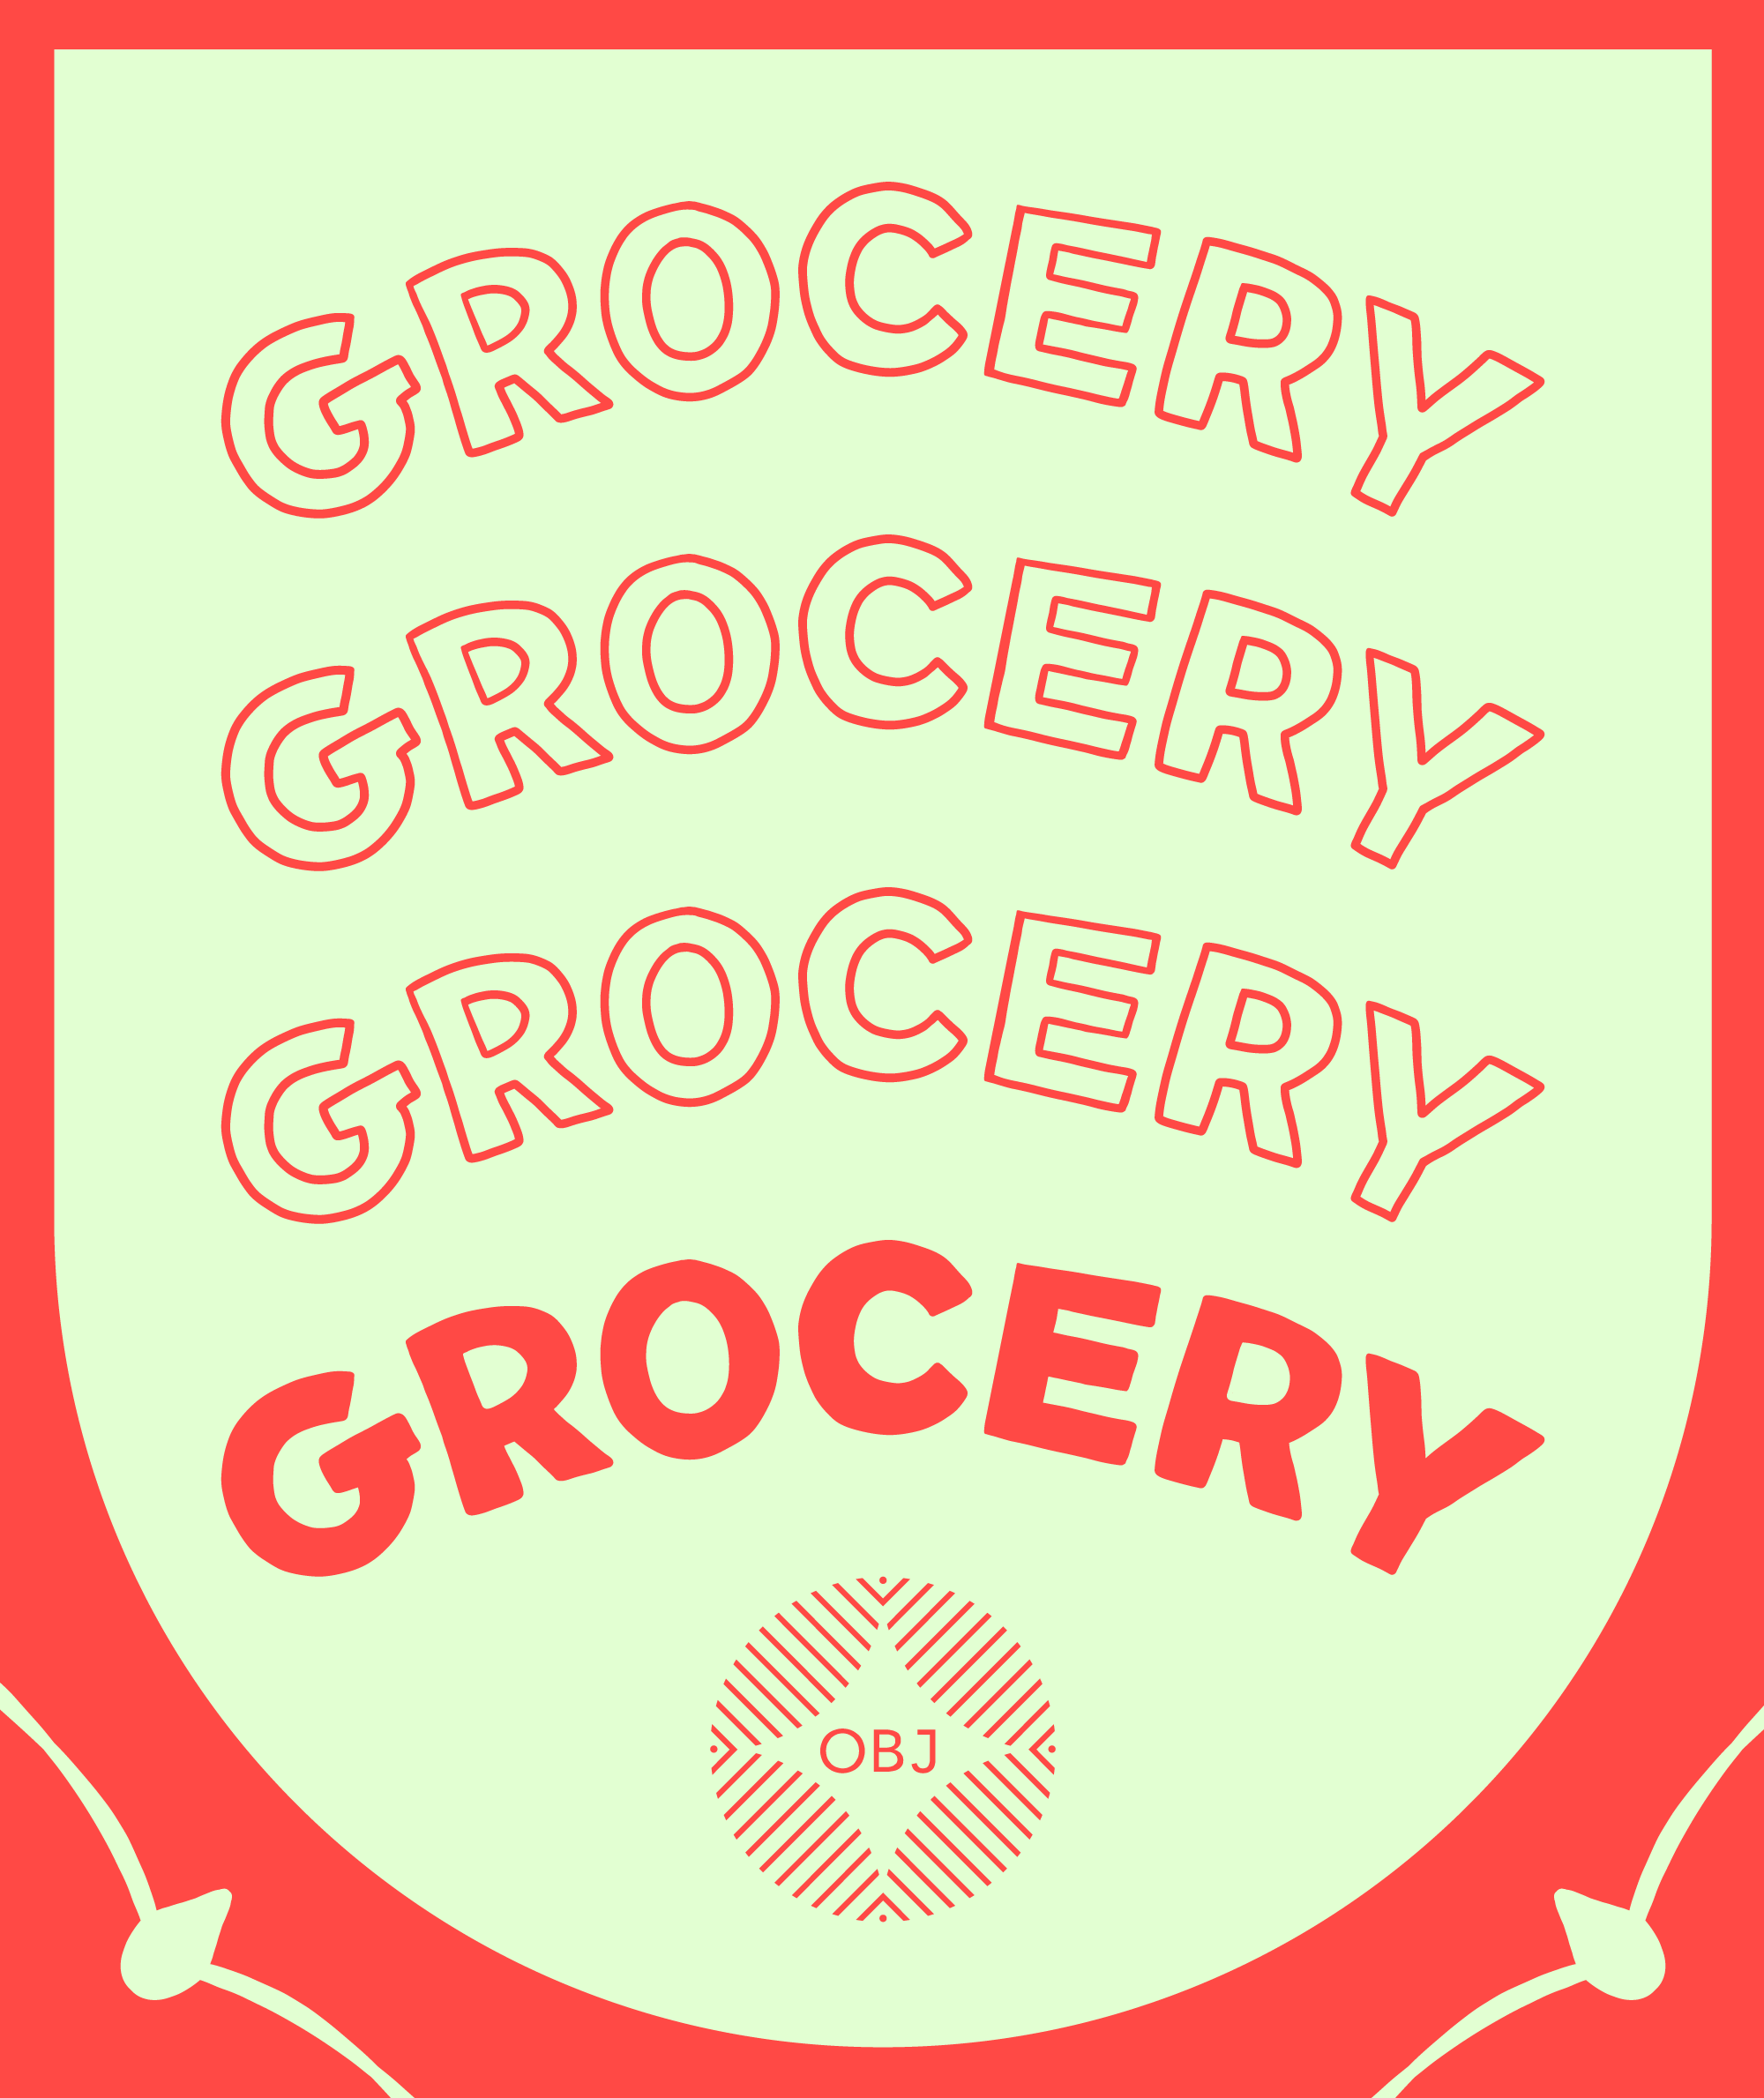 THE-GROCERY_red.png